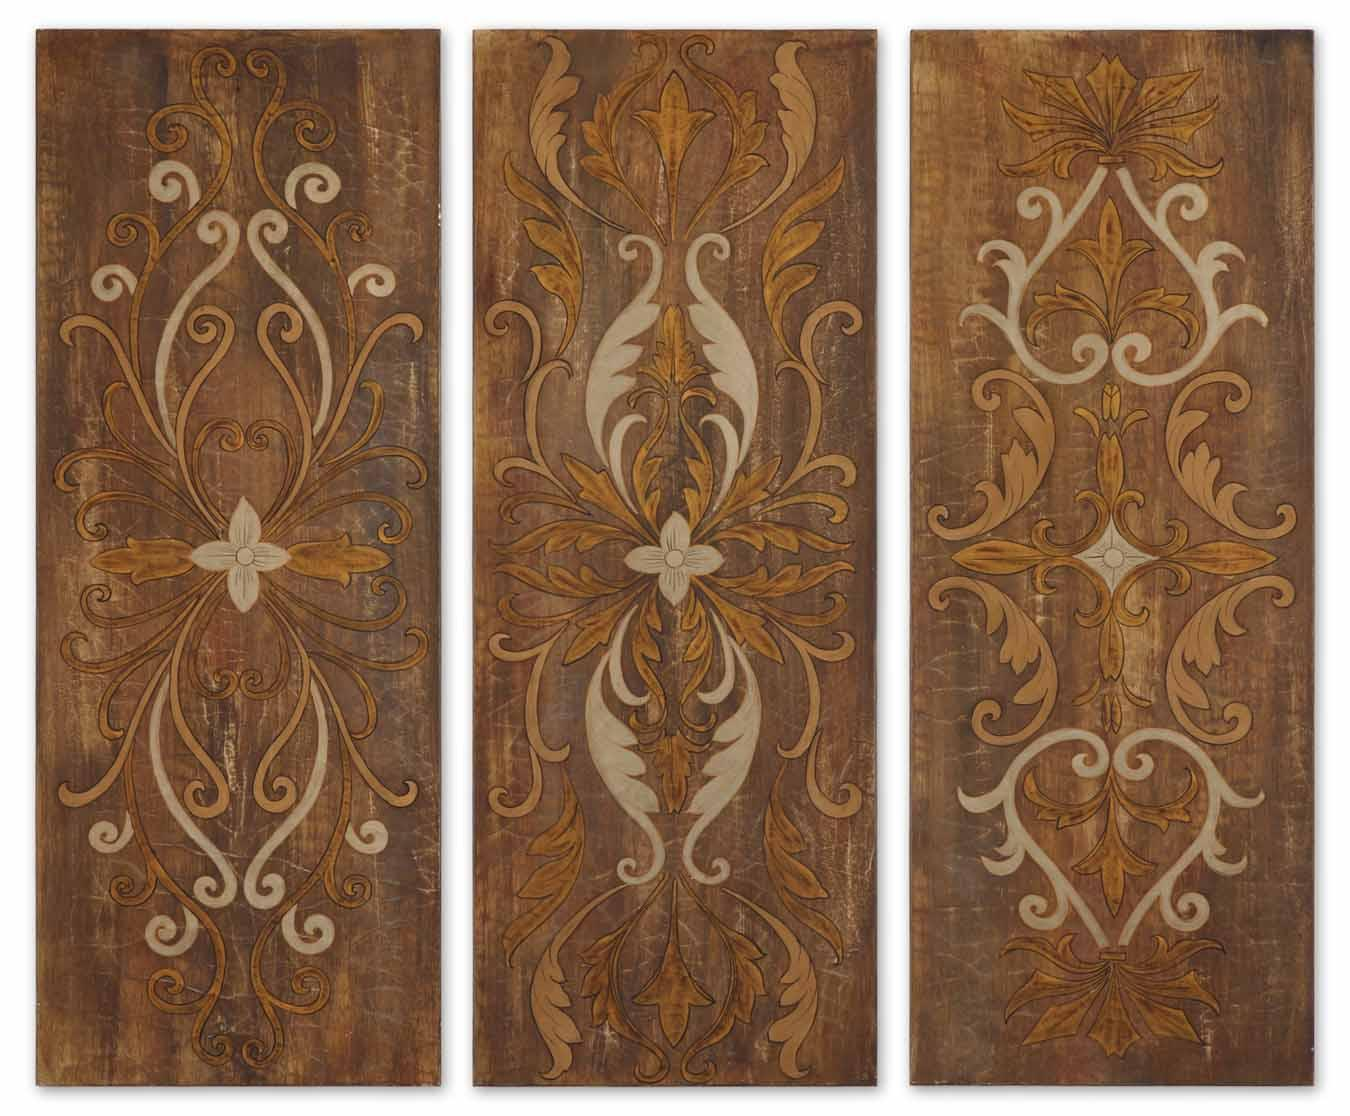 Uttermost Art Elegant Swirl Panels Set of 3 - Item Number: 32169